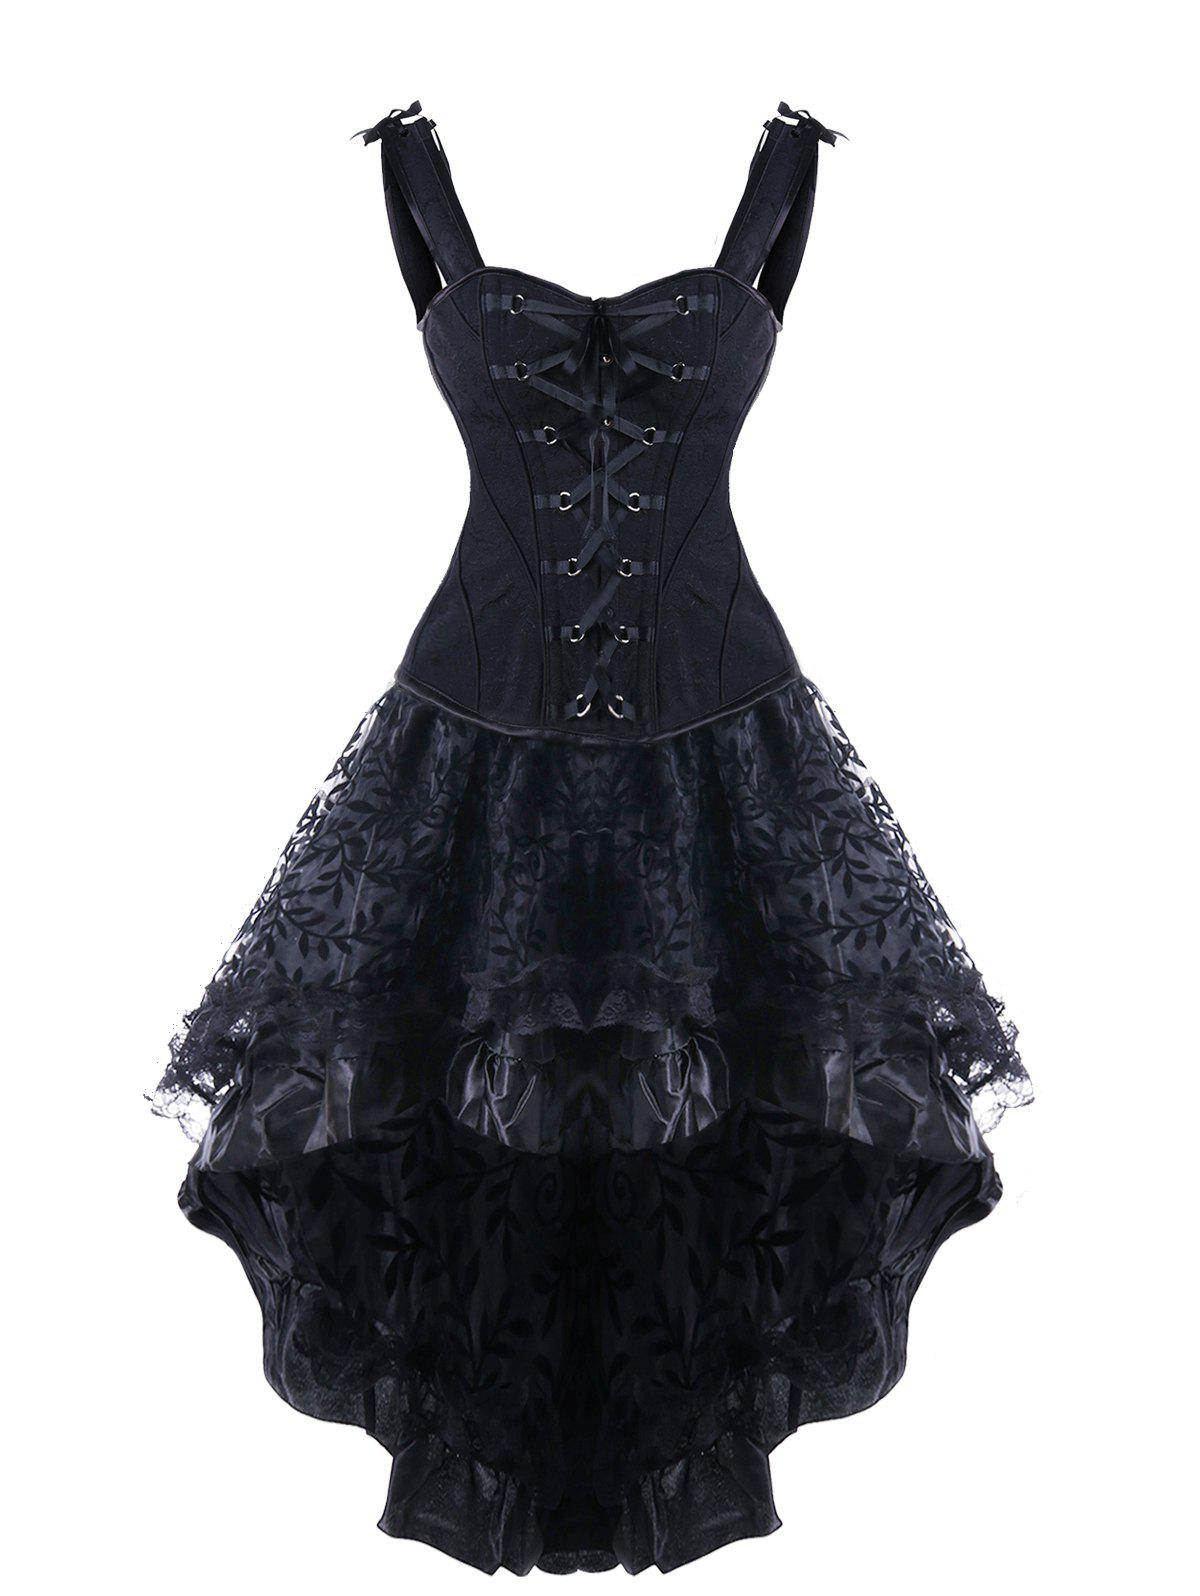 Steel Boned High Low Lace Up Corset Dress - BLACK S